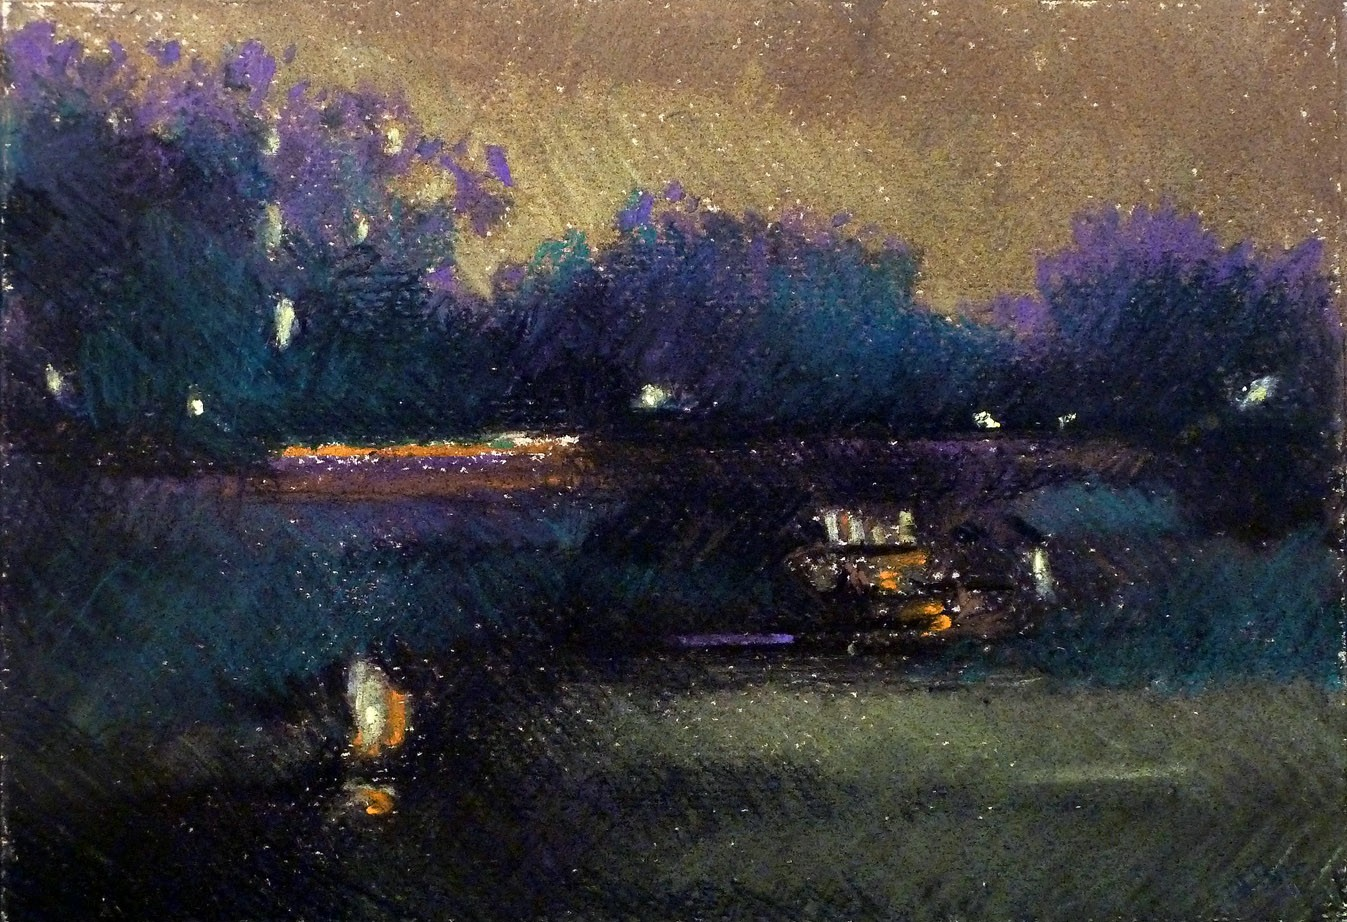 The Pond at Night